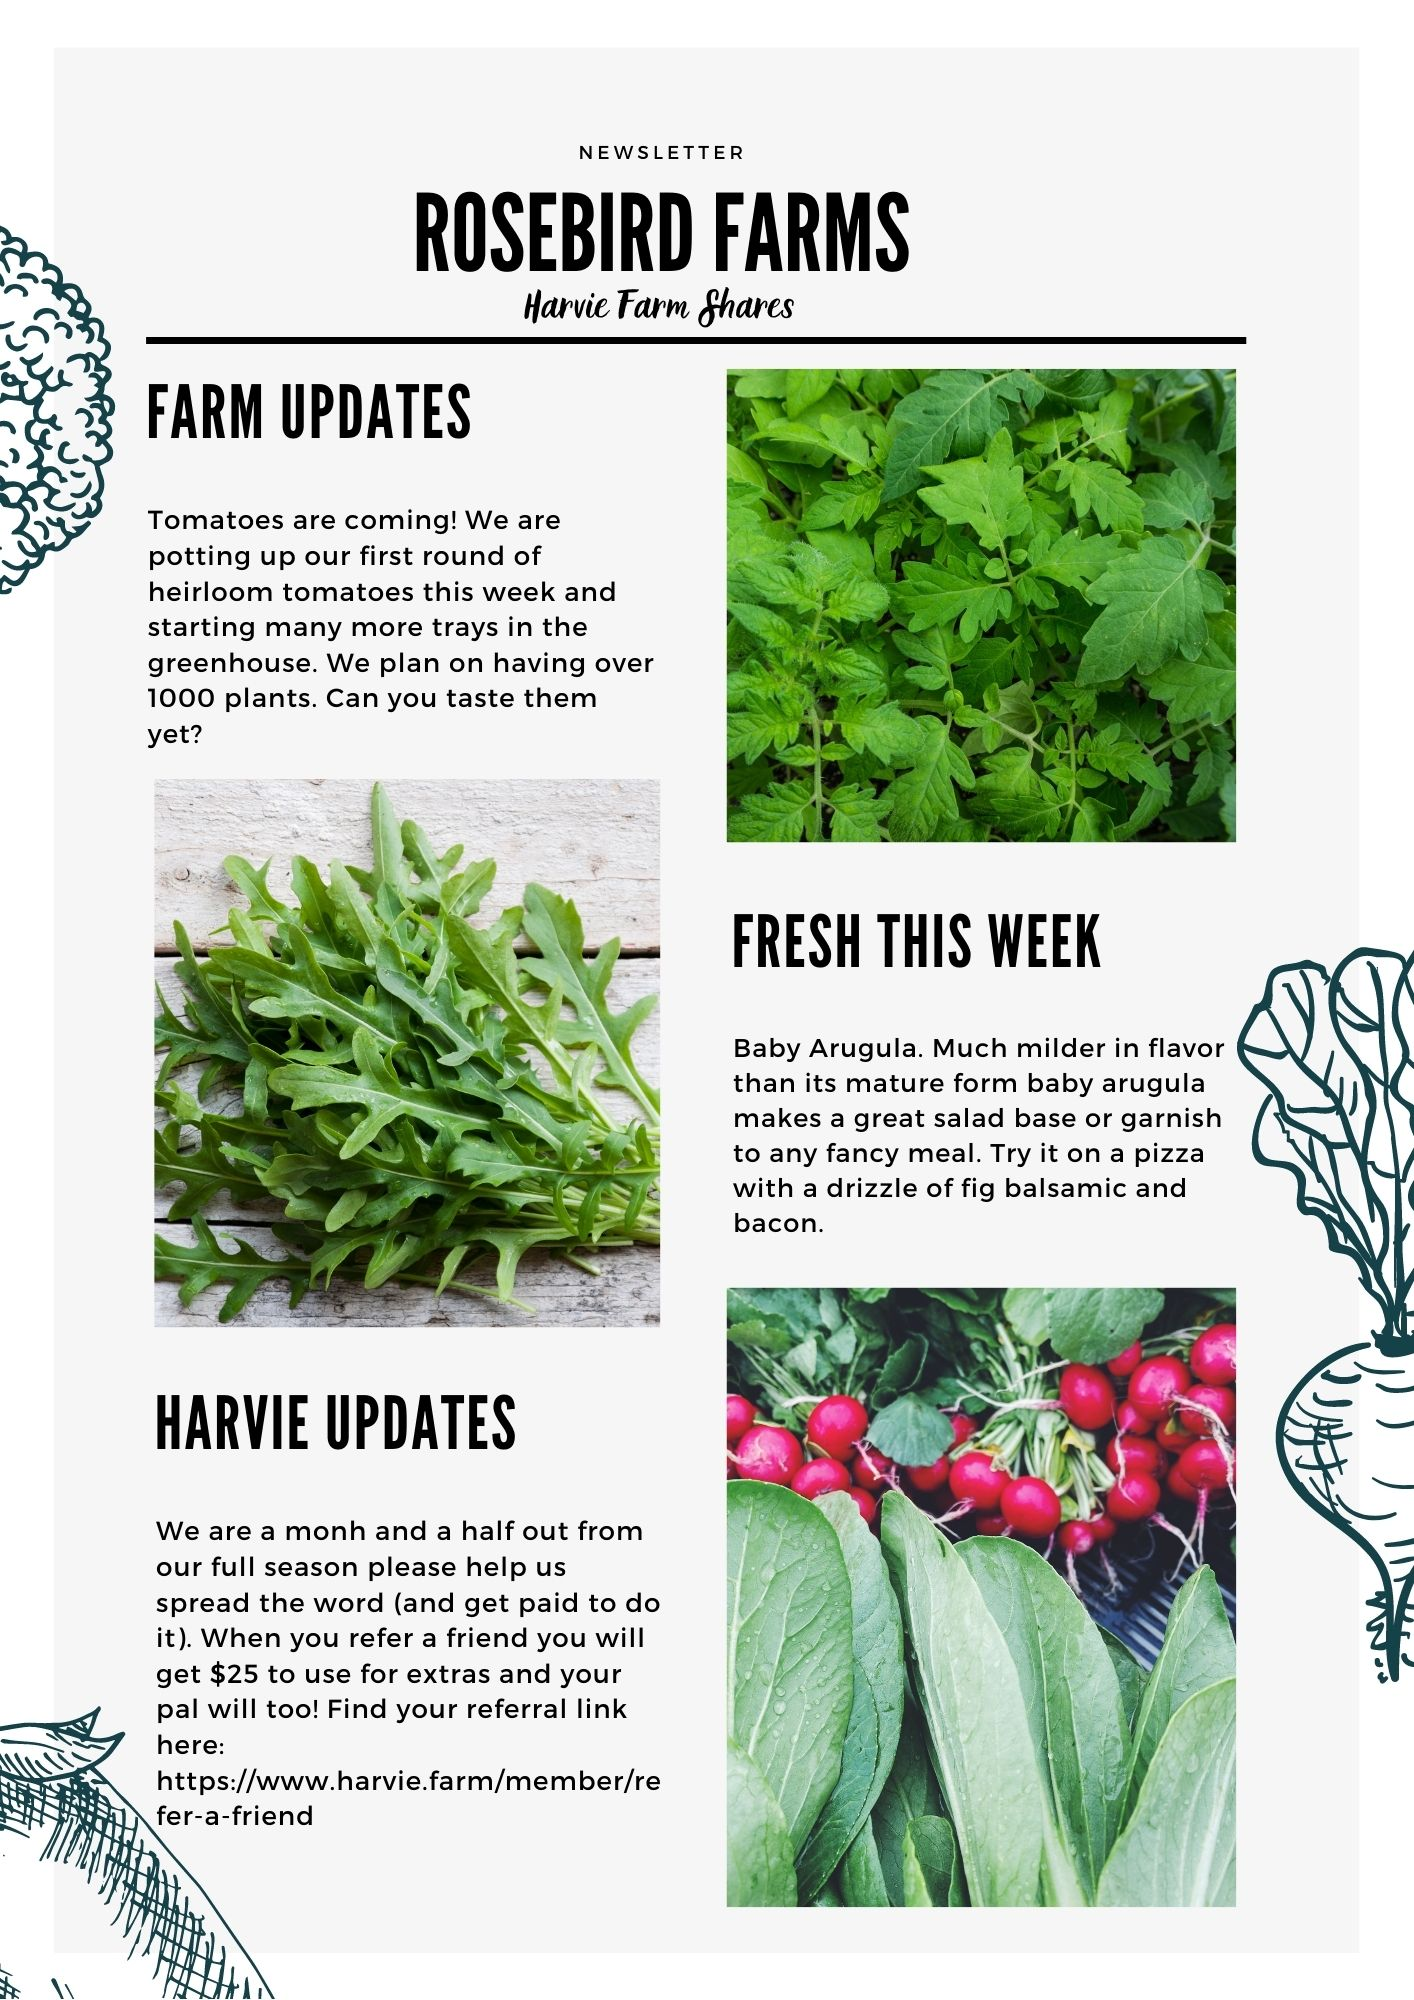 Farm Happenings for February 18, 2021